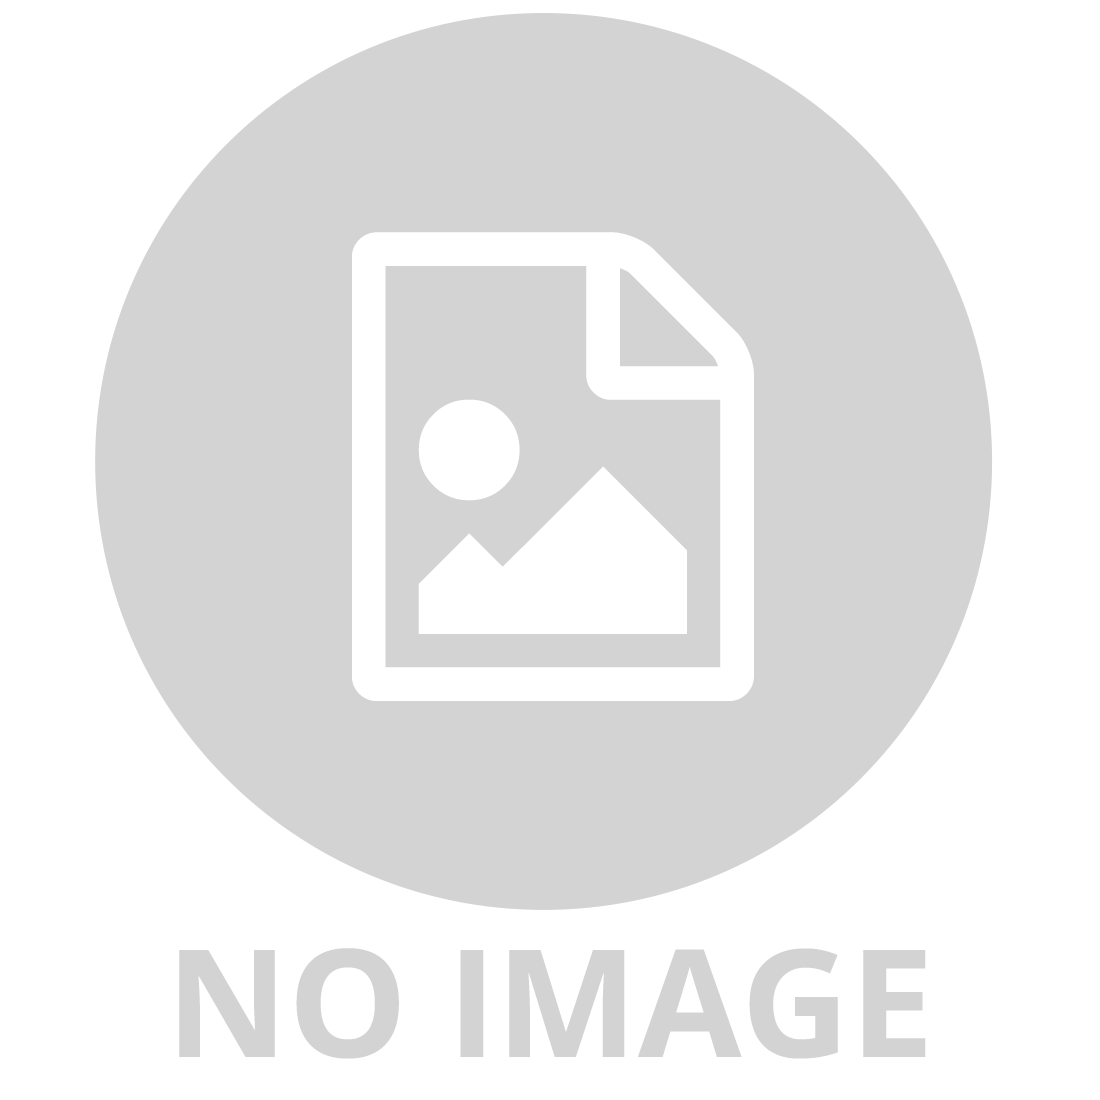 RAVENSBURGER PUZZLE 35 PC TOY STORY 4 - MADE TO PLAY